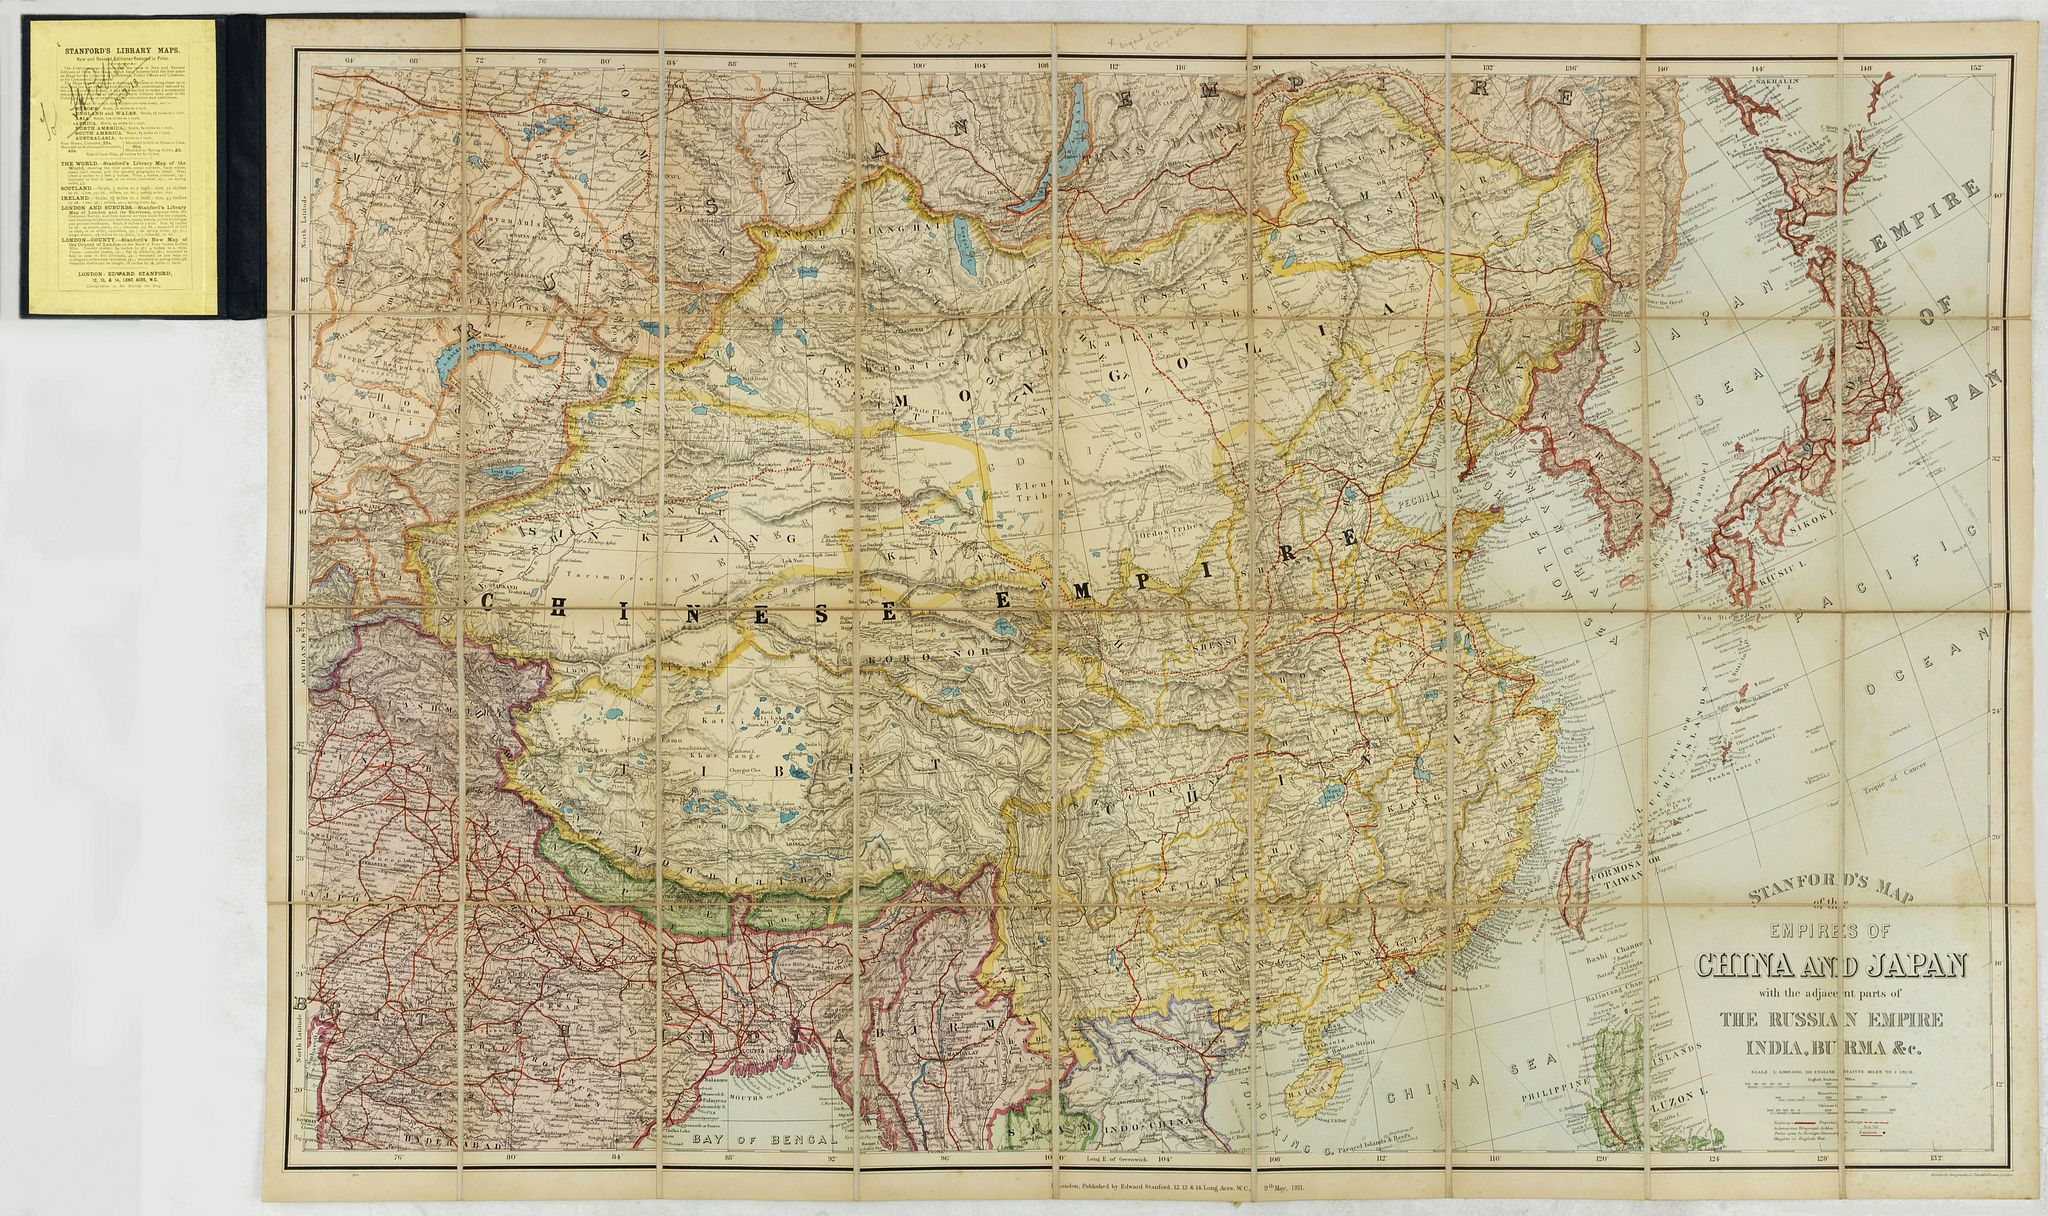 STANFORD, E. -  Standford's map of the empires of China and Japan with the adjacent parts of the Russian Empire, India, Burma &c.